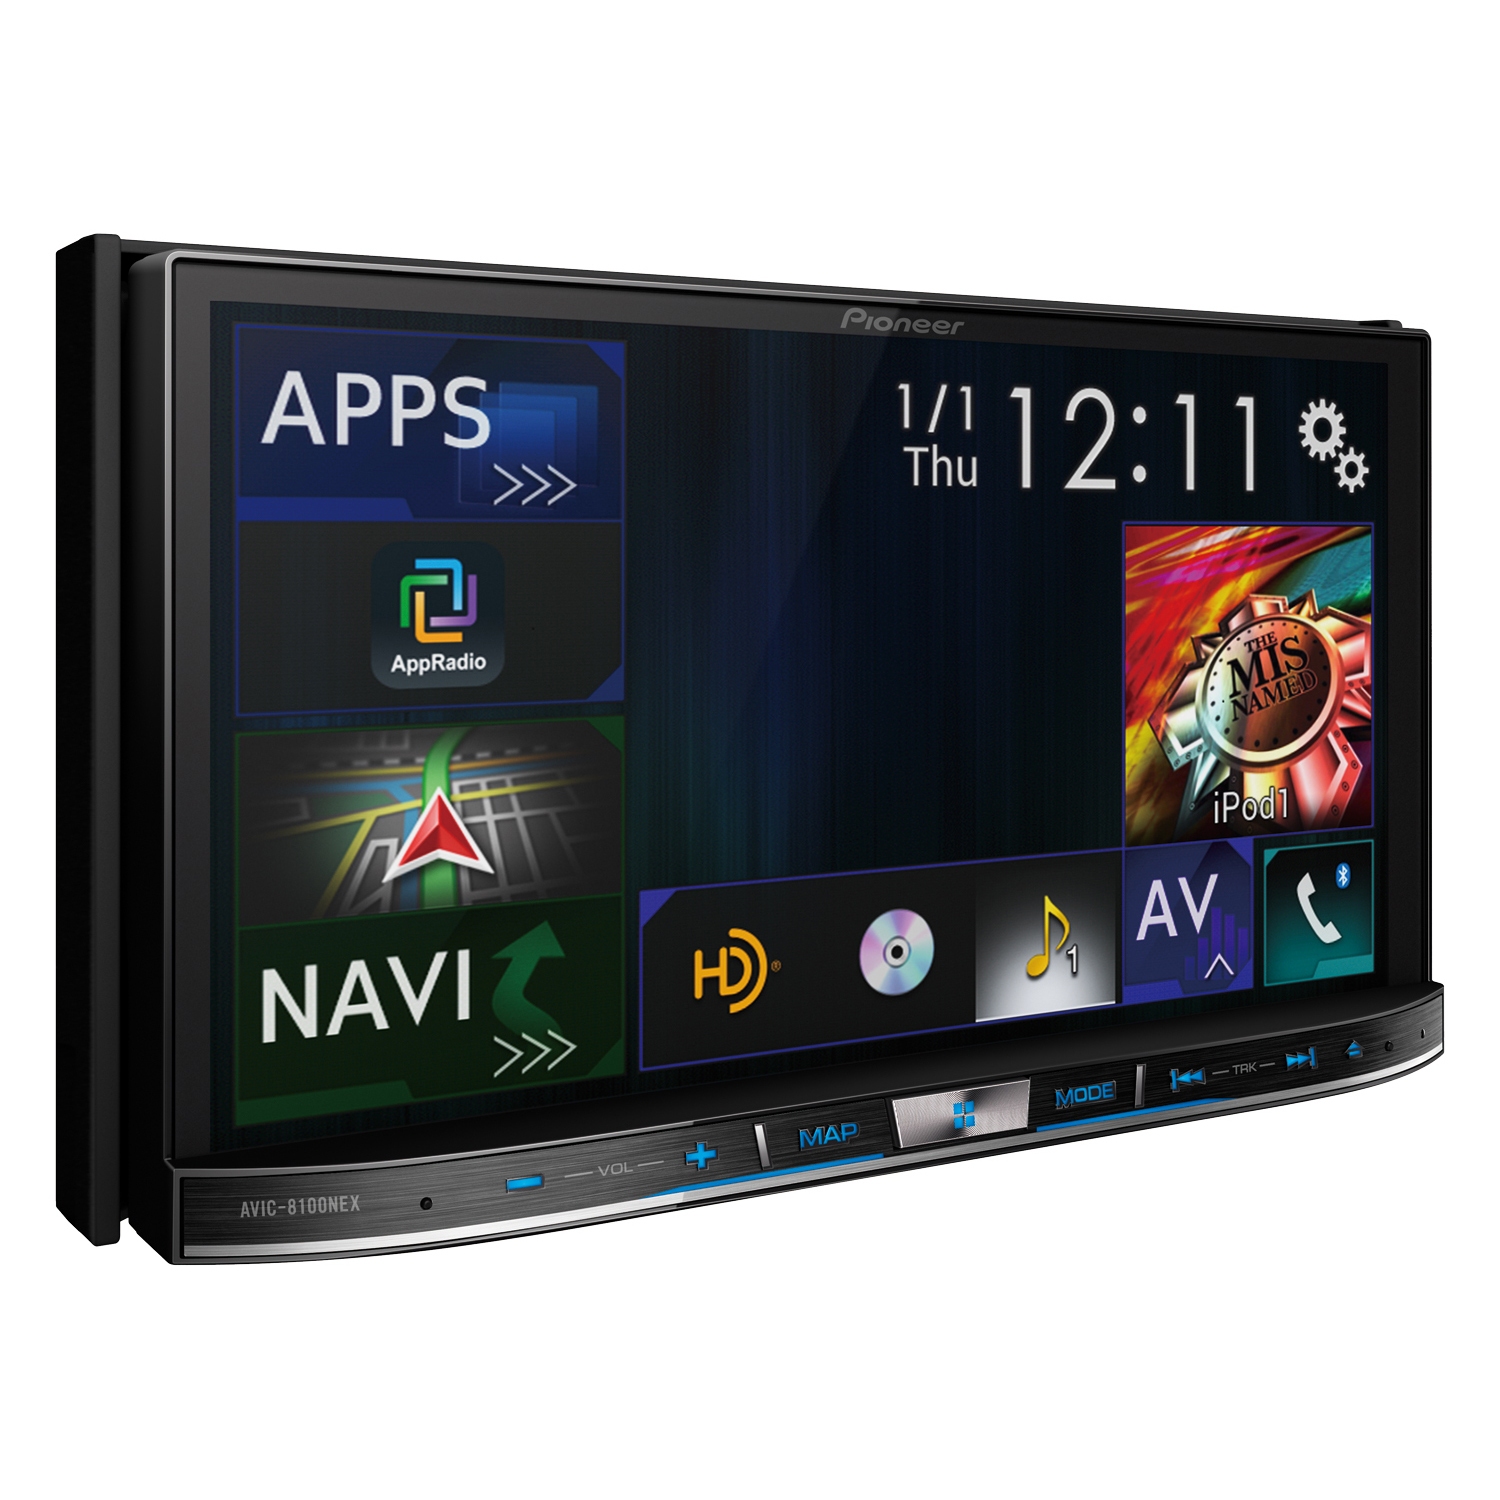 pioneer announces new head units with android auto support priced at 700 to 1400. Black Bedroom Furniture Sets. Home Design Ideas